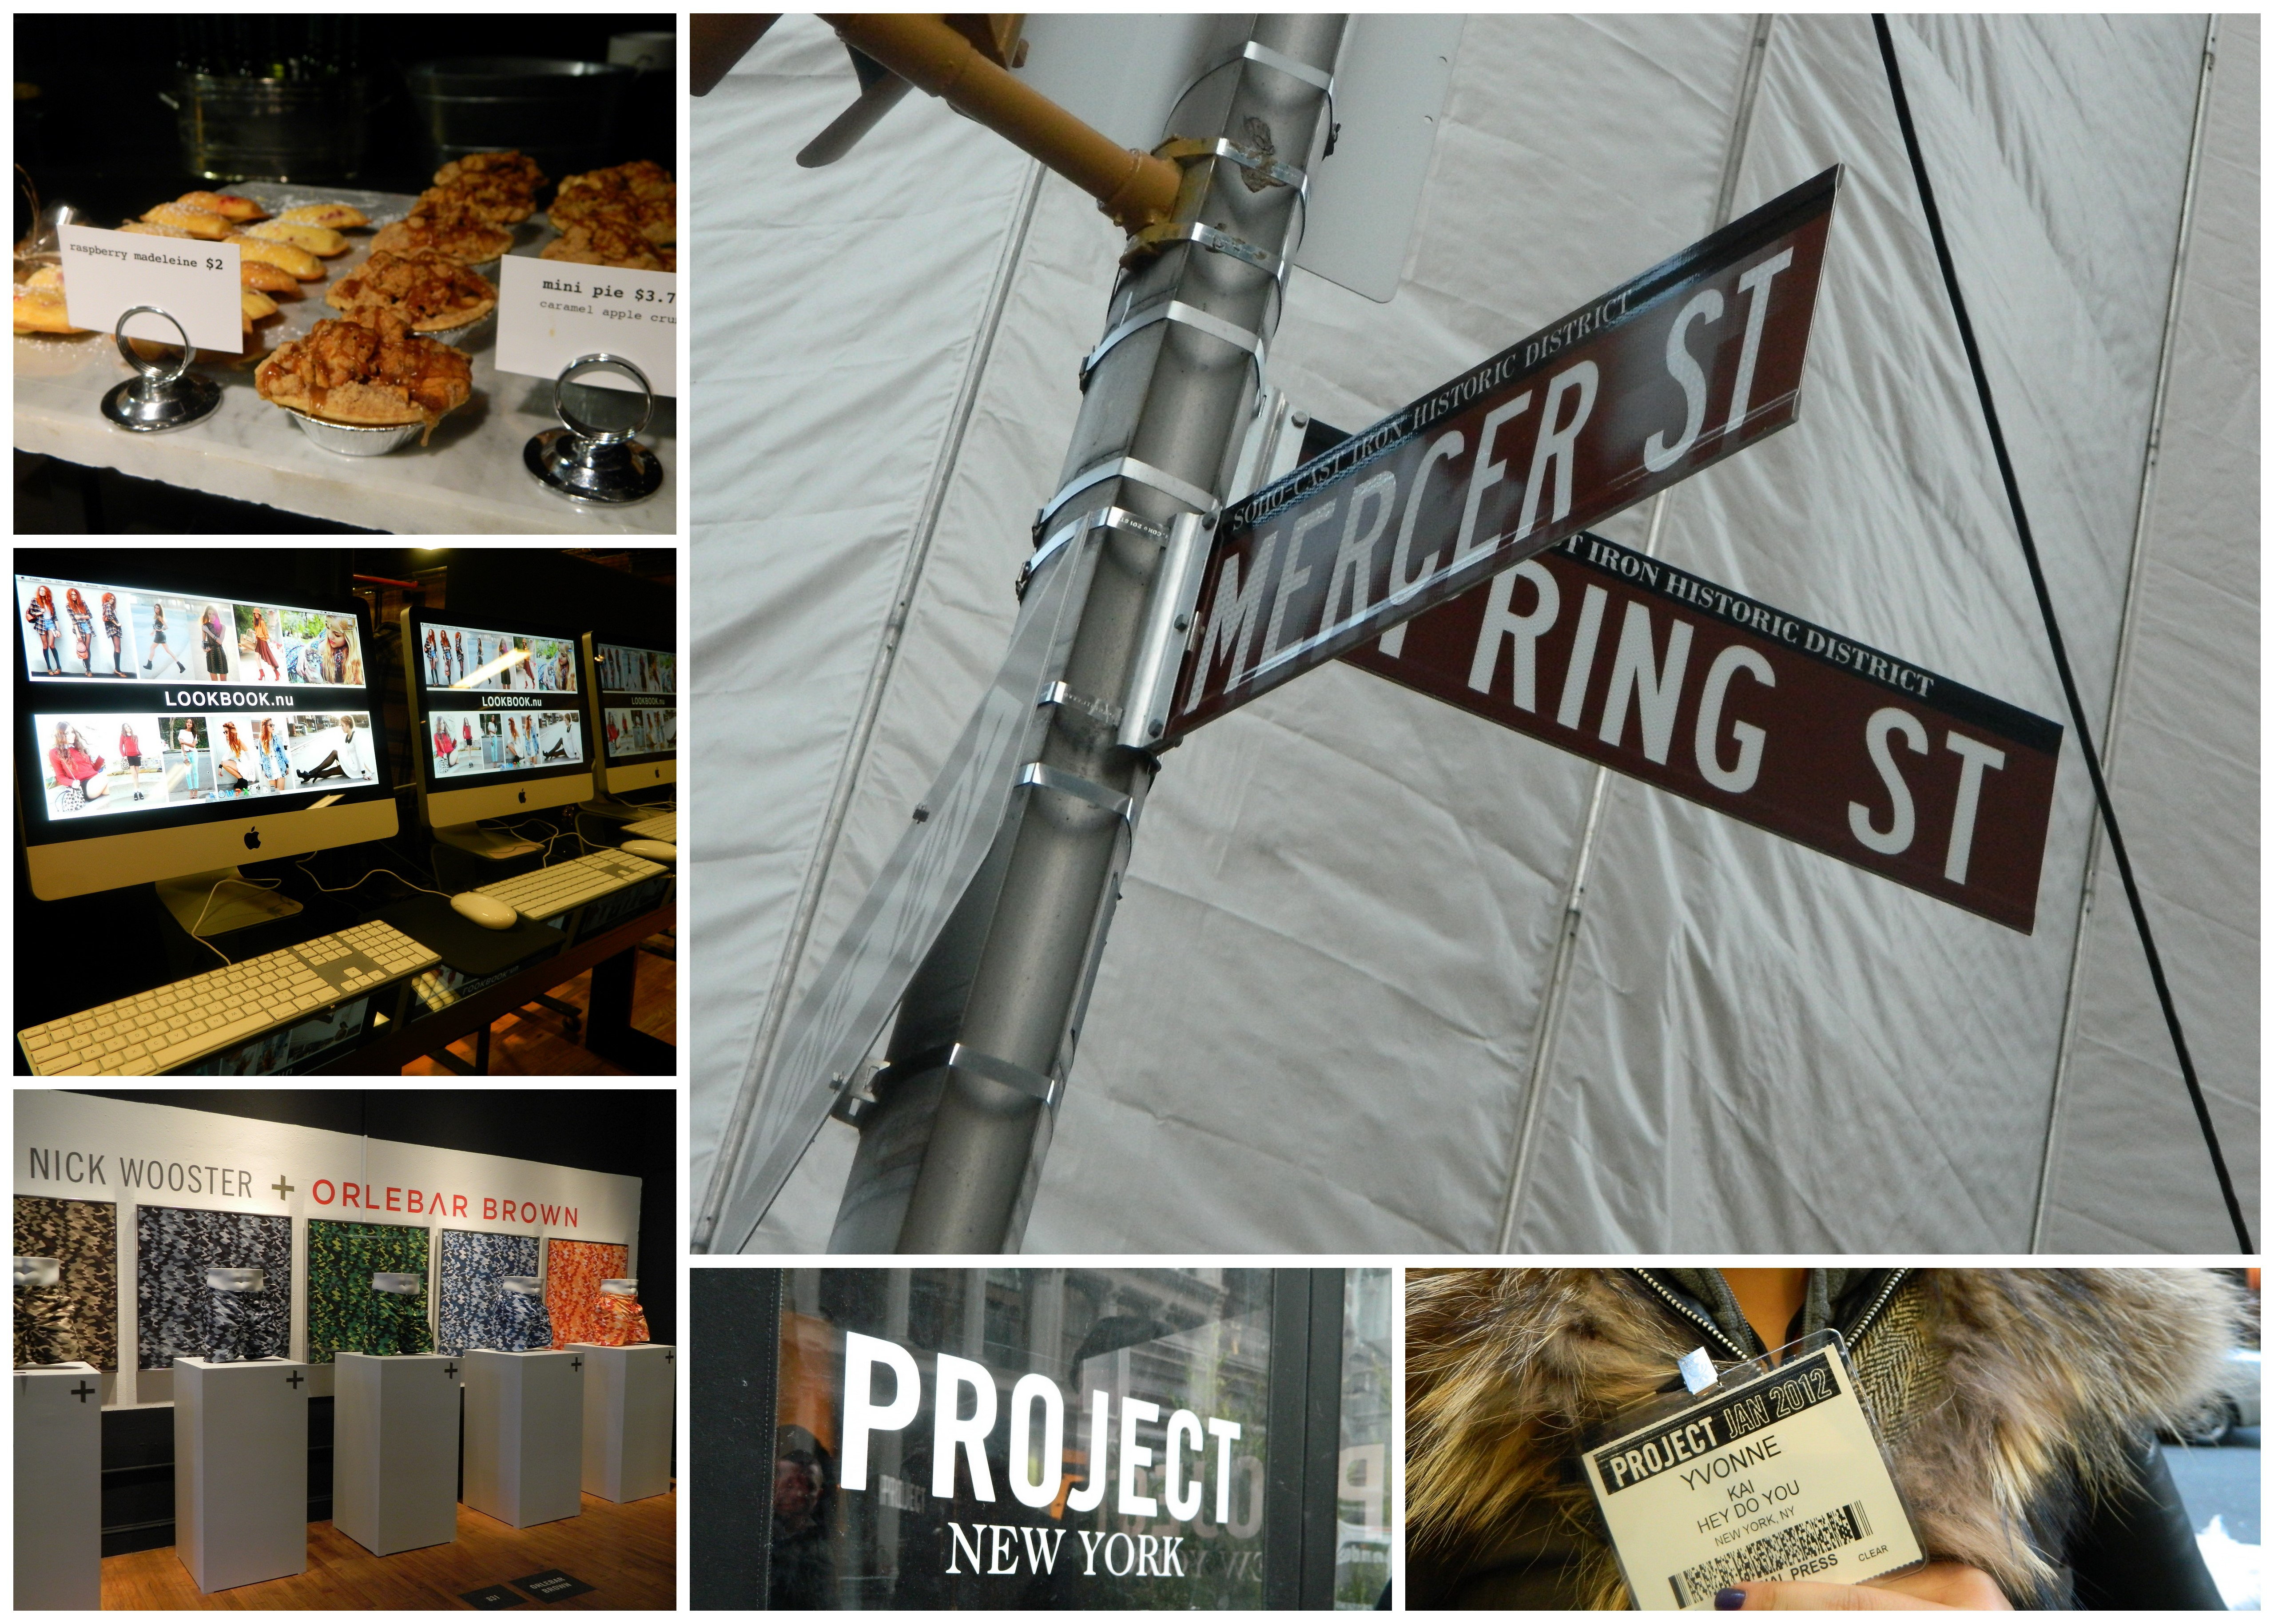 Project 20121 2012 @ProjectShow with @MarcusTroy